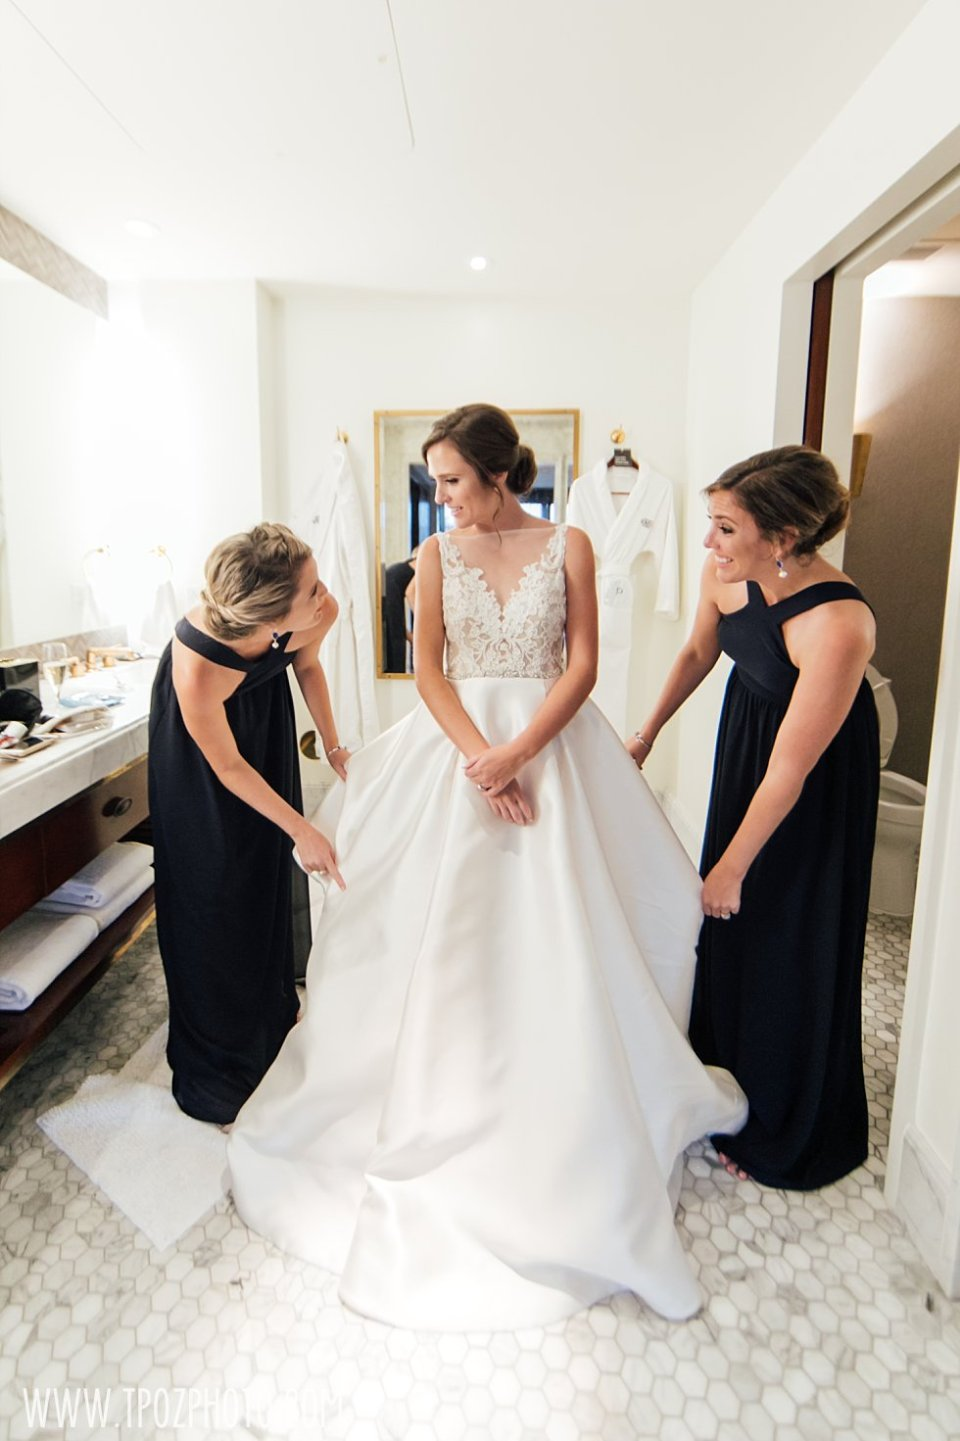 Bride's final touches in her Lazaro gown •  tPoz Photography • www.tpozphoto.com